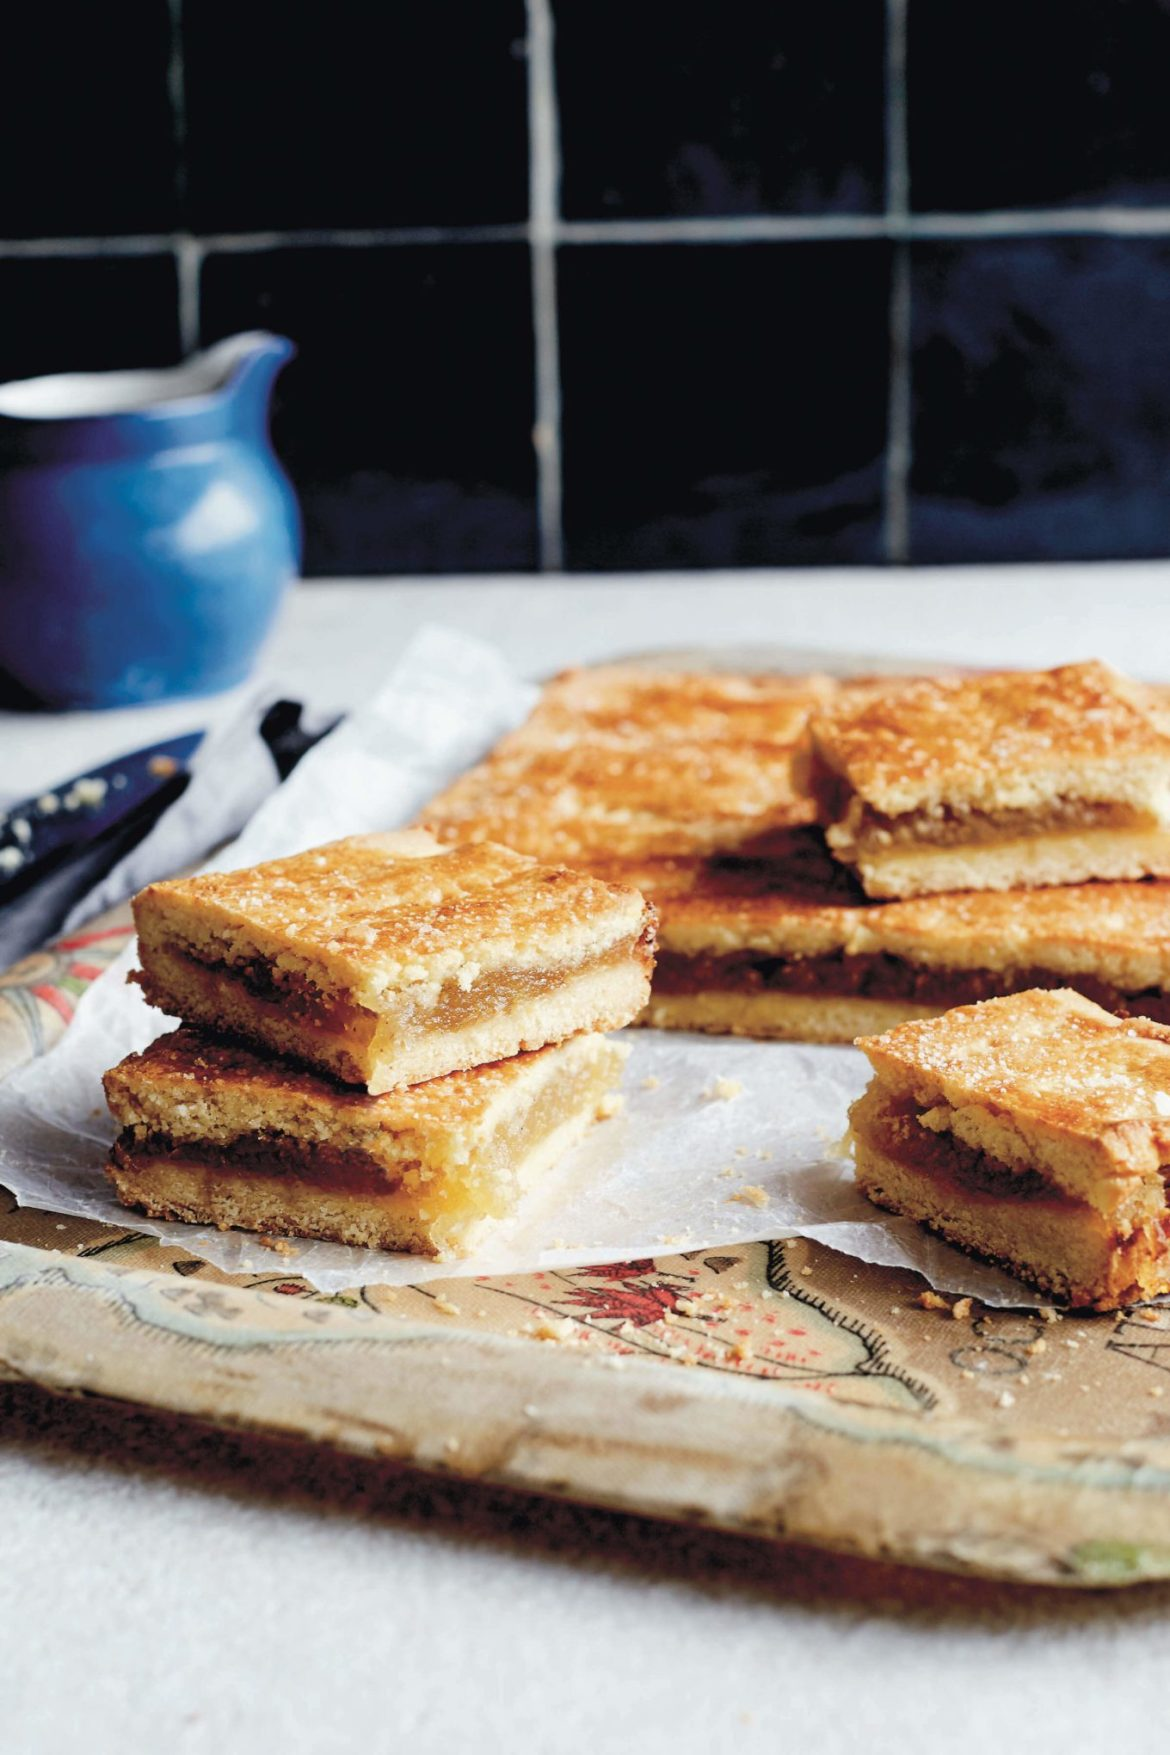 This fall Apple Cake Recipe is the perfect fall dessert recipe by Ino Kuvačić from Dalmatia: Recipes from Croatia's Mediterranean Coast, See more on The Taste Edit